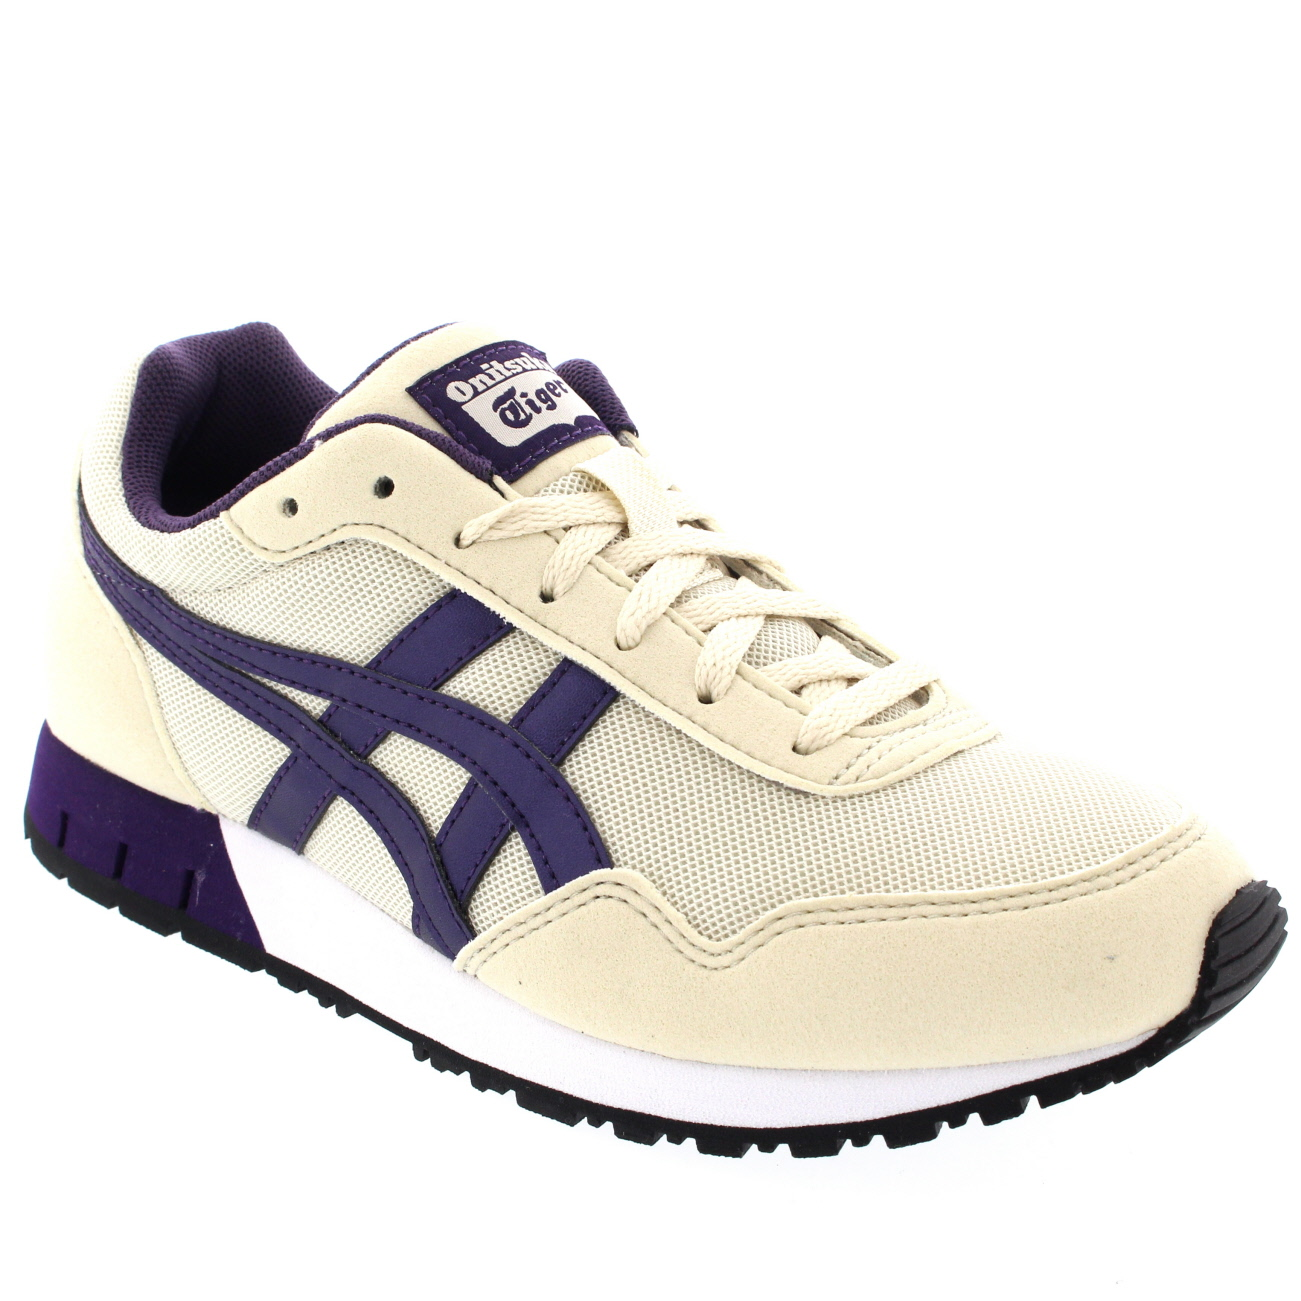 Onitsuka Tiger Curreo Trainers